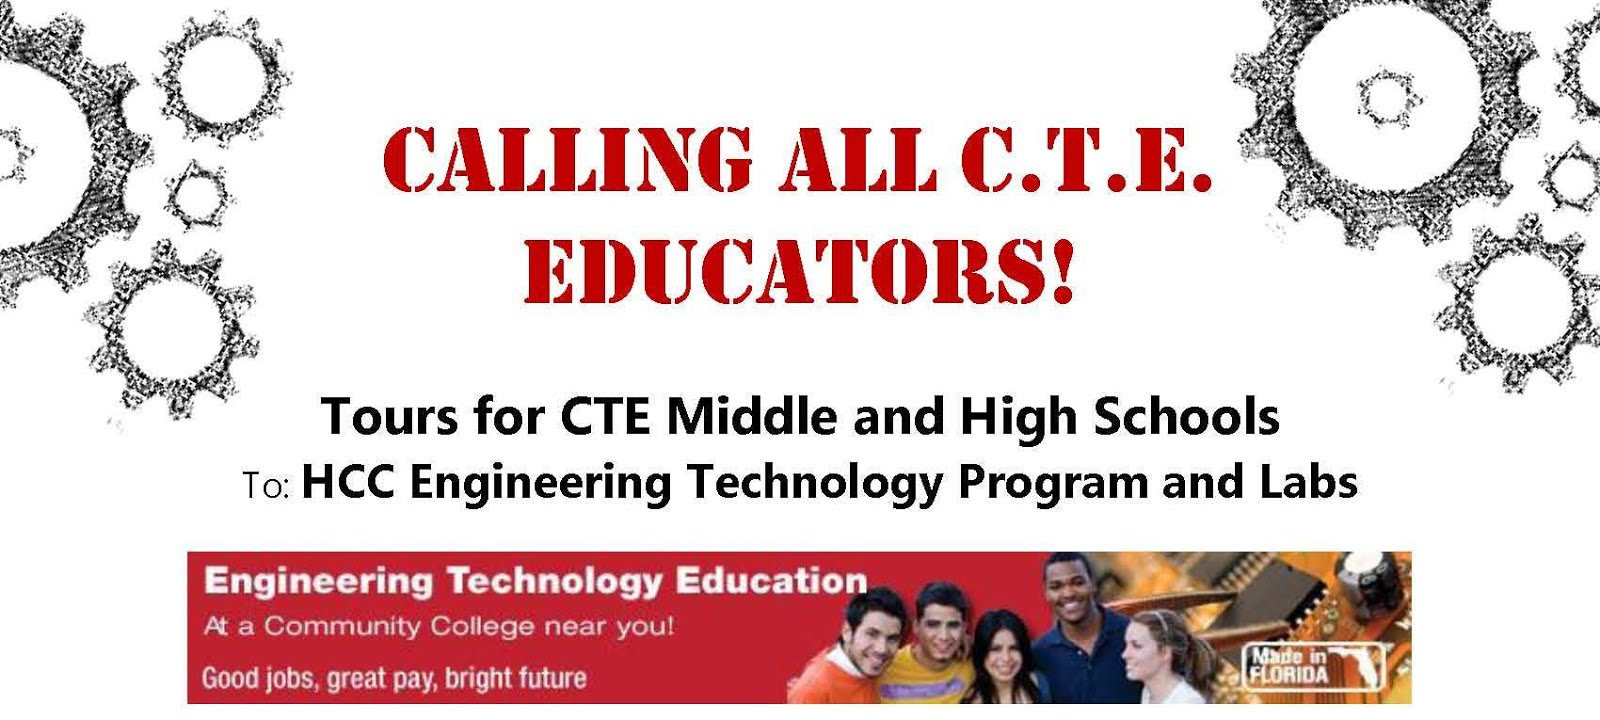 Calling ALL CTE Educators!